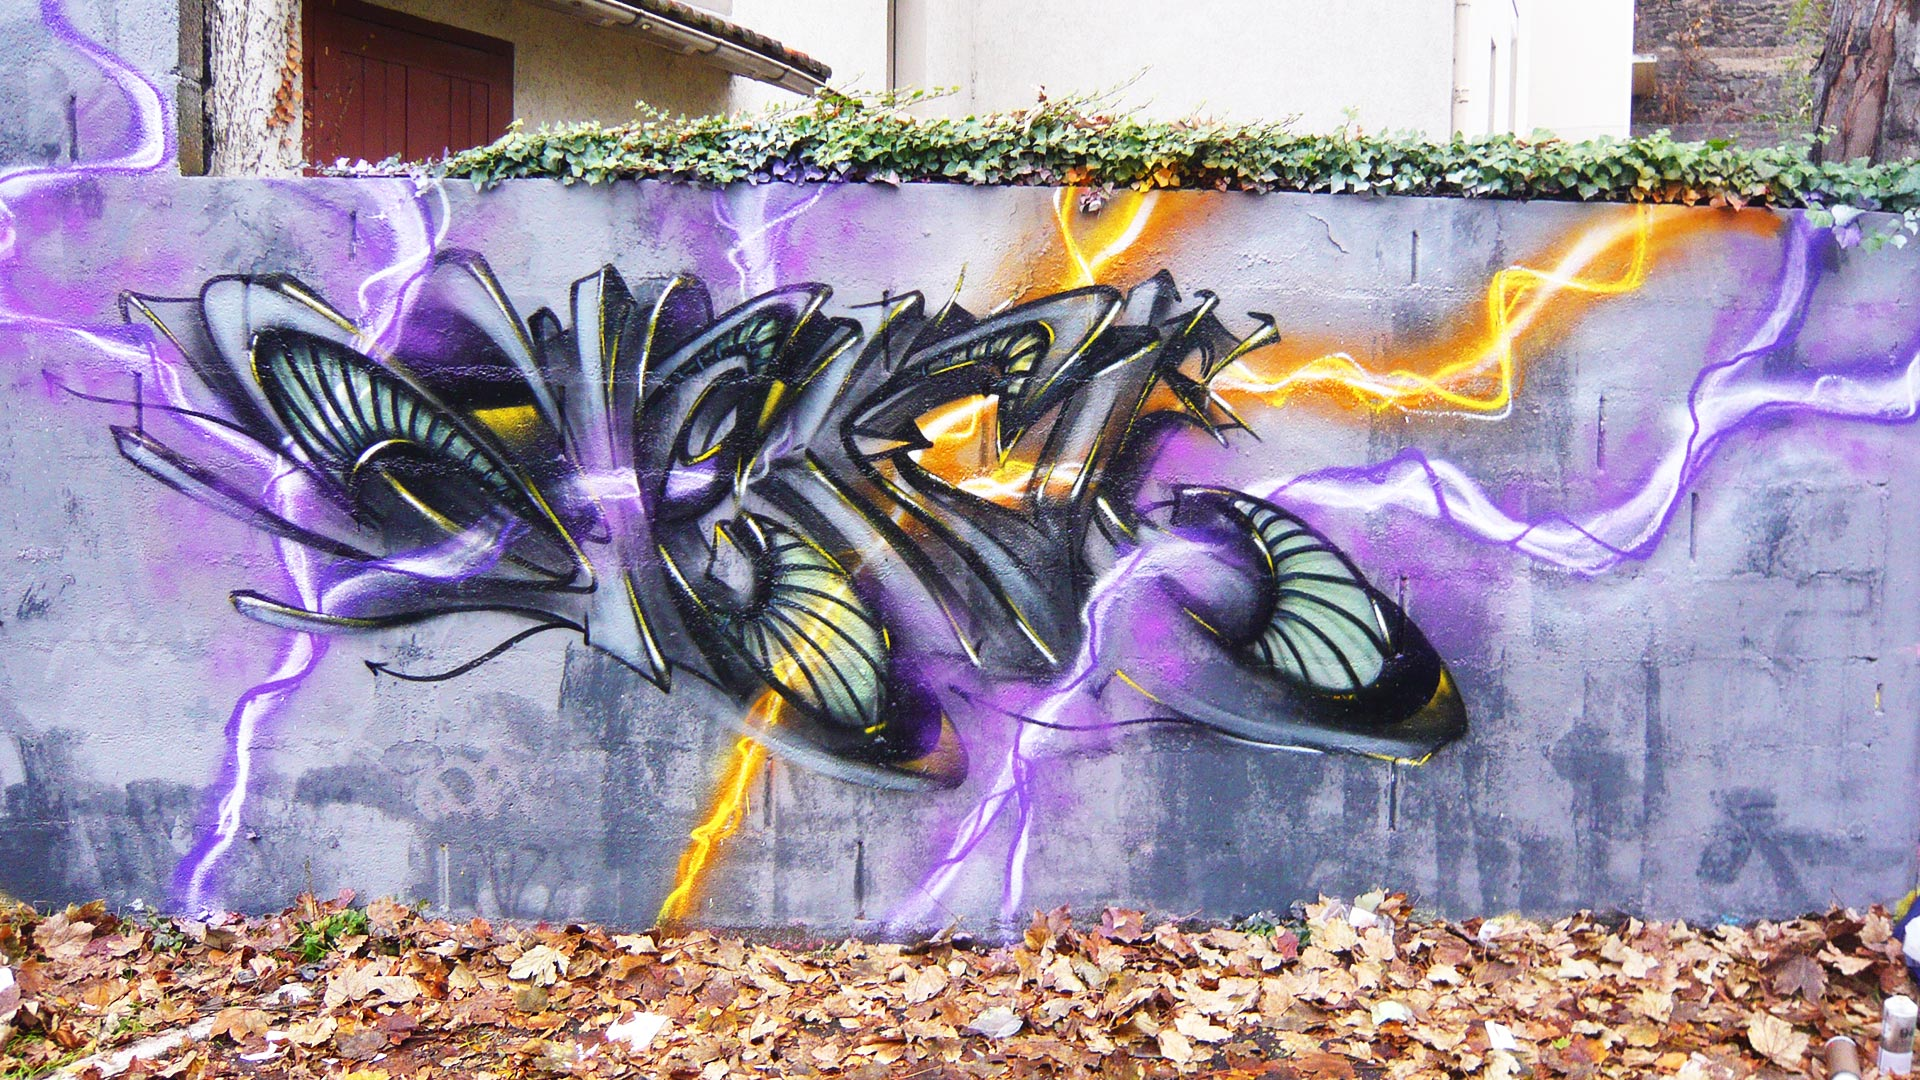 Deft - tracé direct - Graffiti